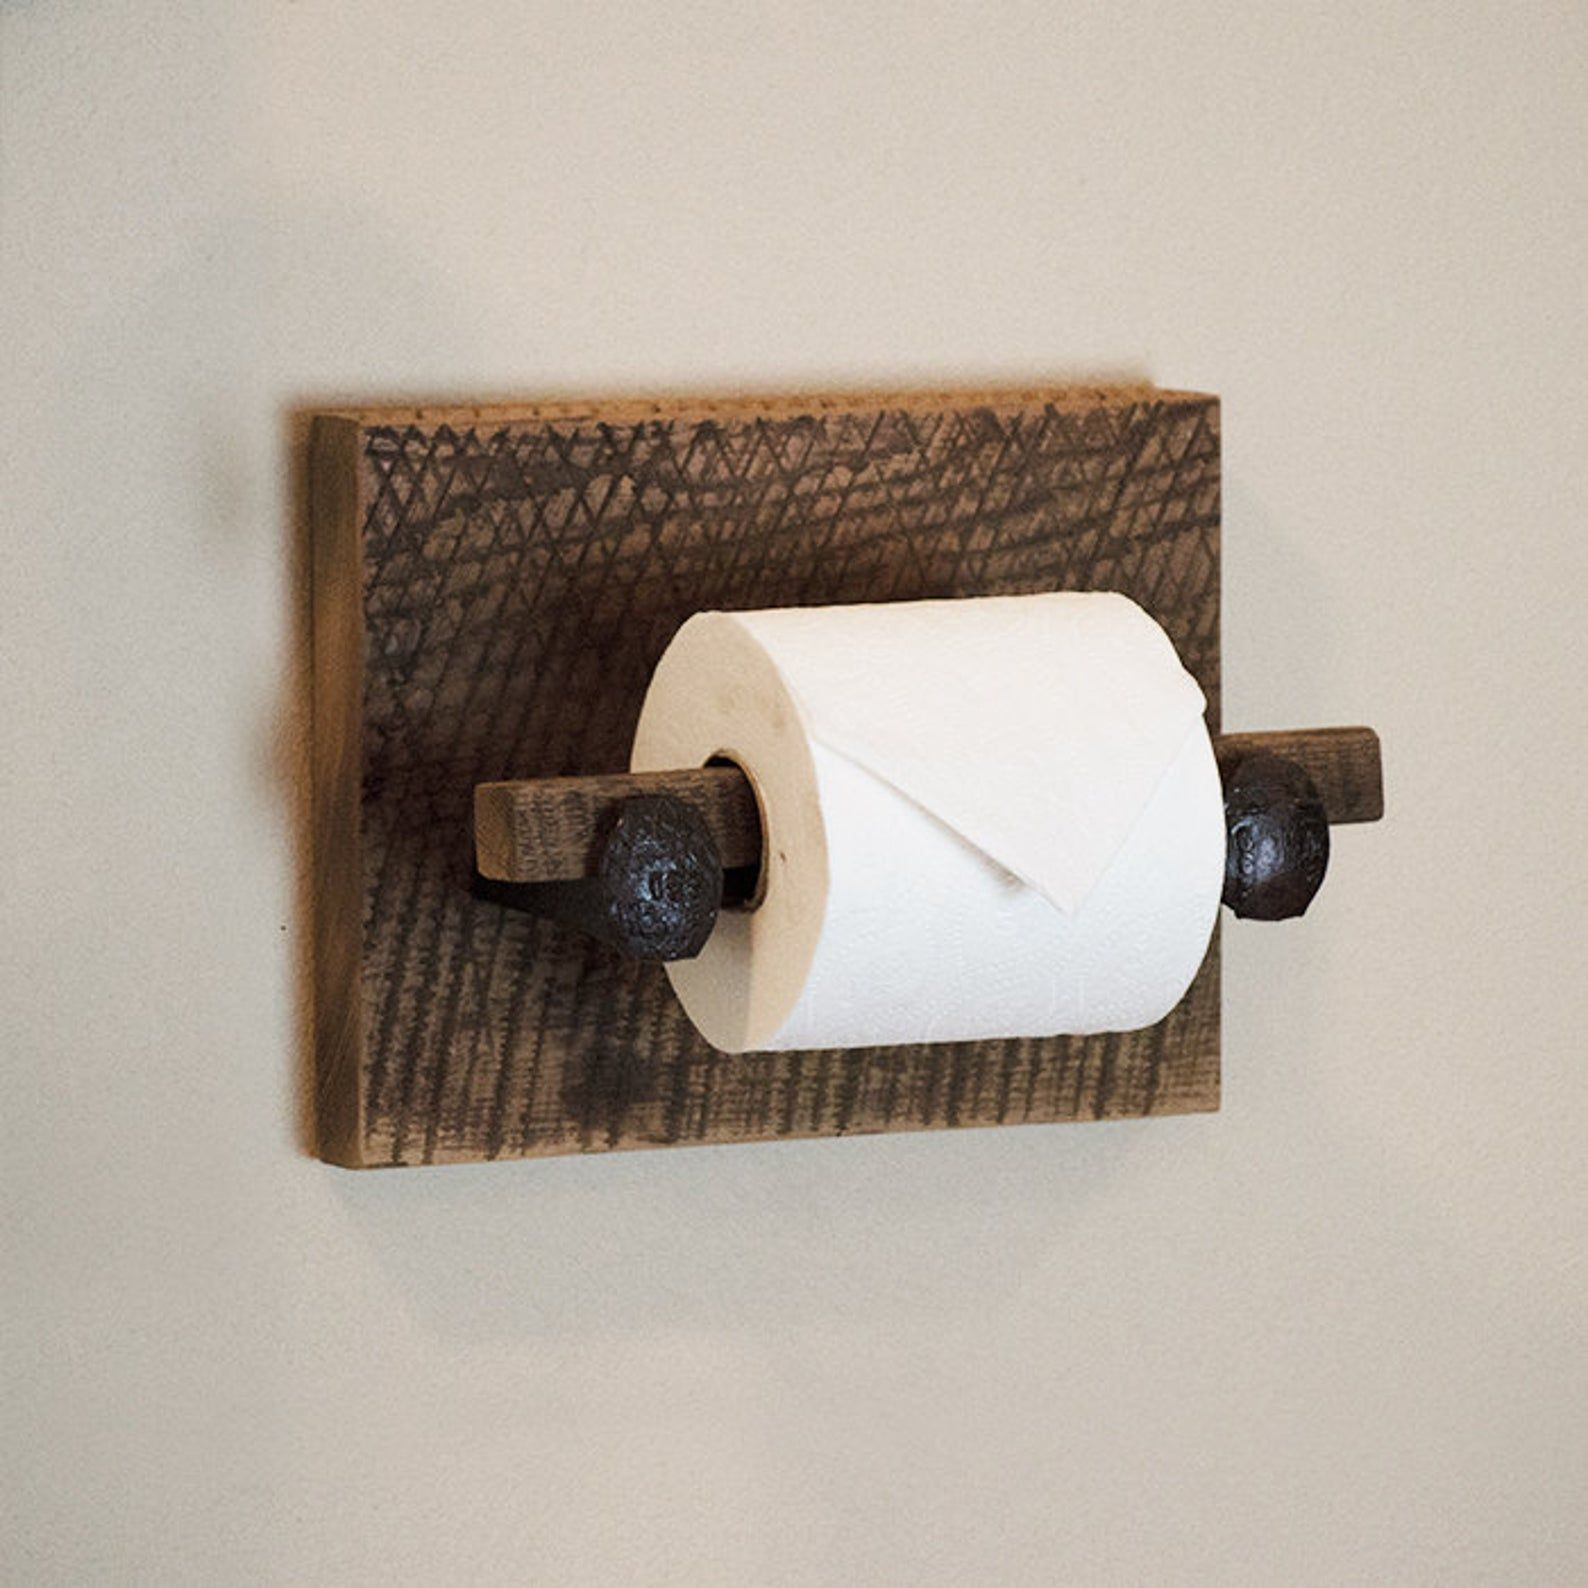 Barn Wood Toilet Paper Holder Rustic Toilet Paper Hanger With Railroad Spikes Toilettenpapierhalterung Rustikale Toilettenpapierhalter Wc Papierhalter